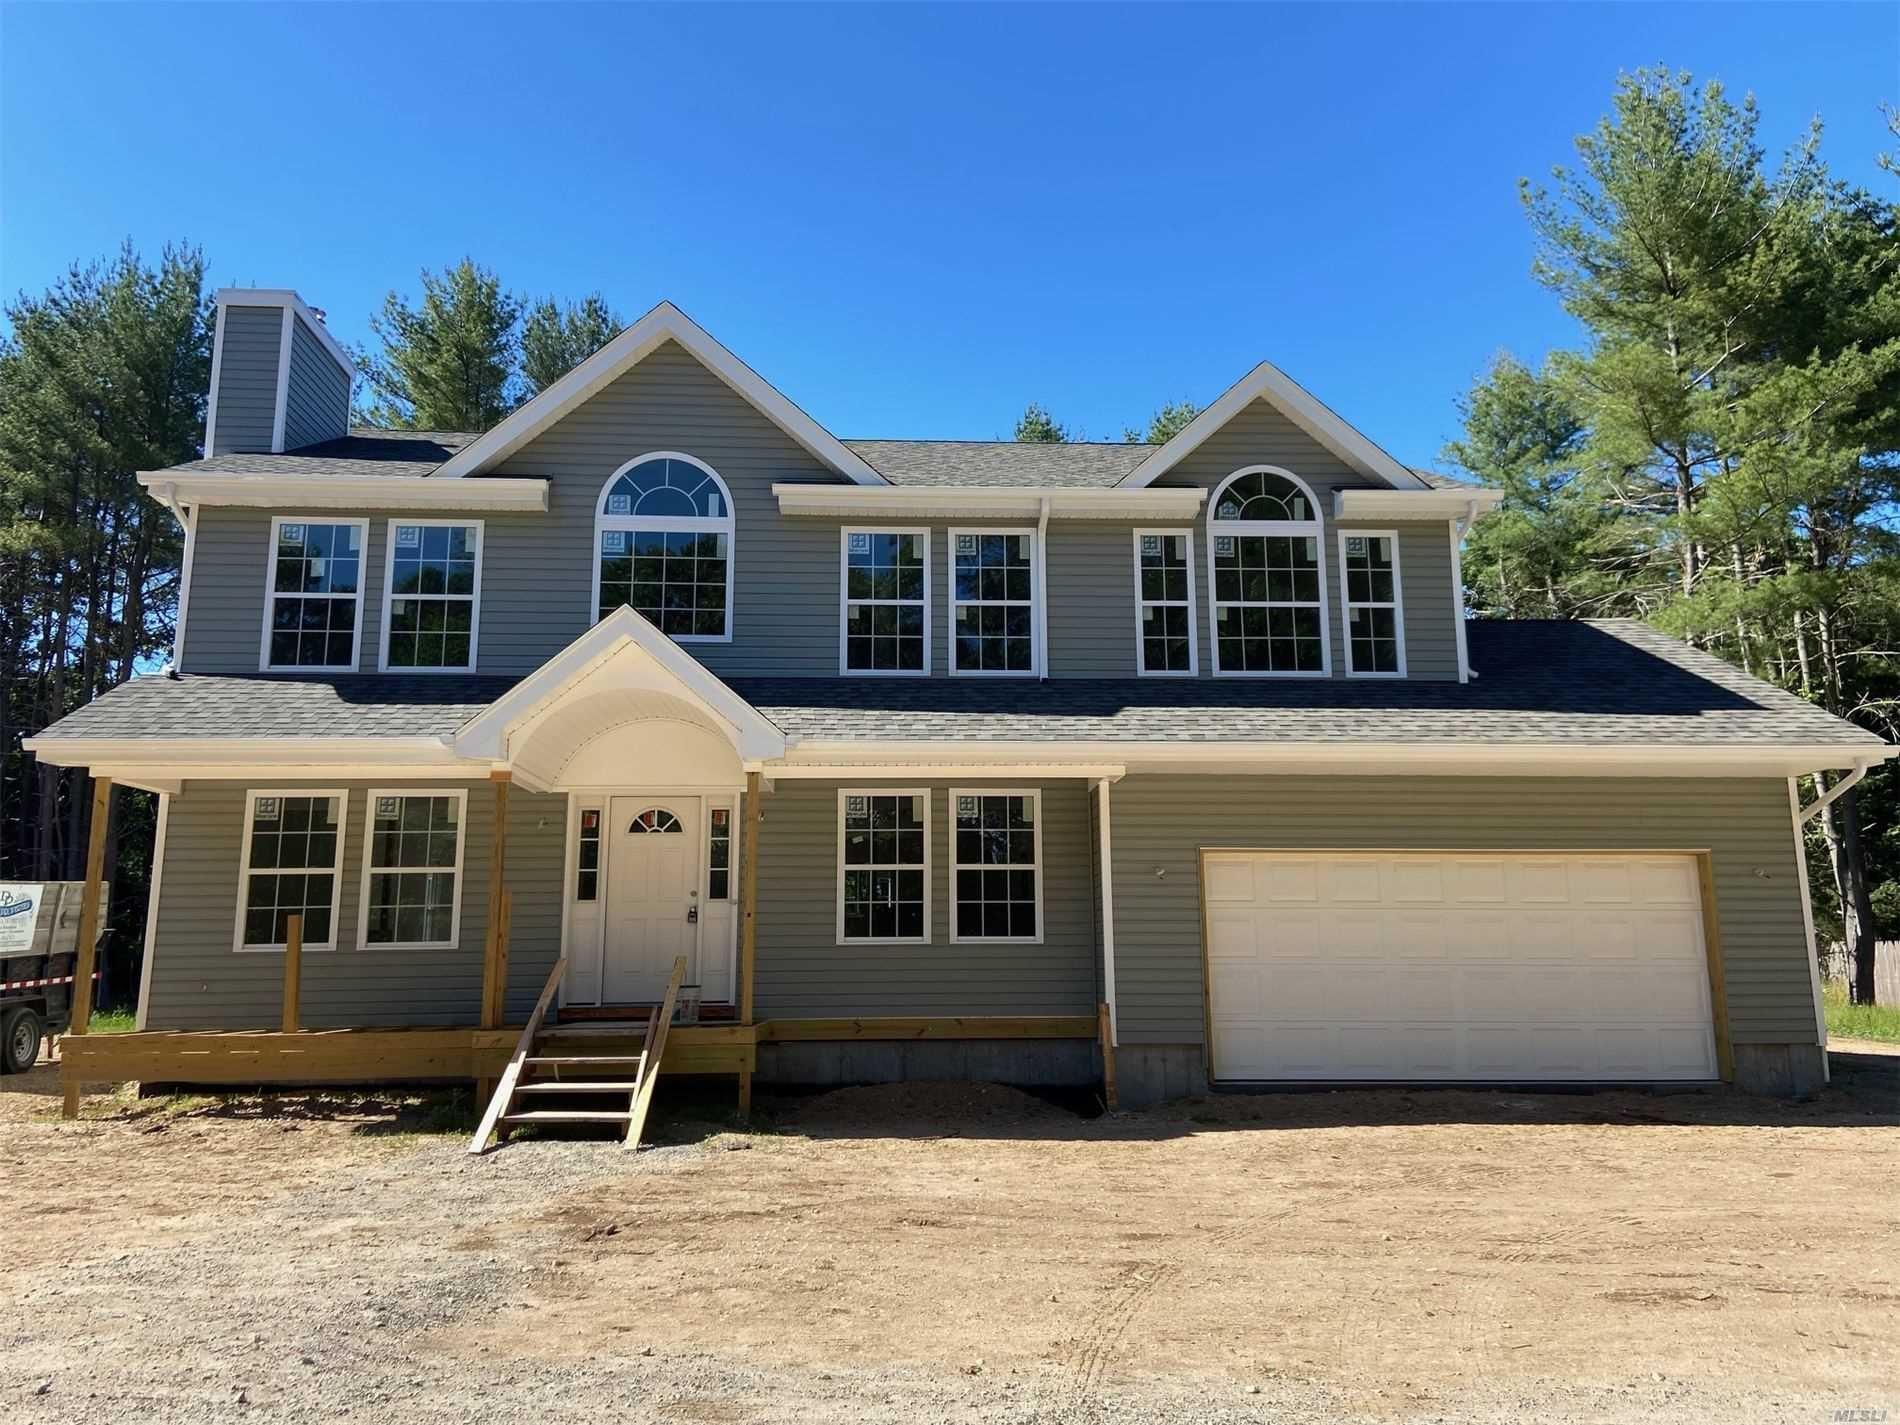 32 Middle Isl Blvd, Middle Island, NY 11953 - MLS#: 3193485